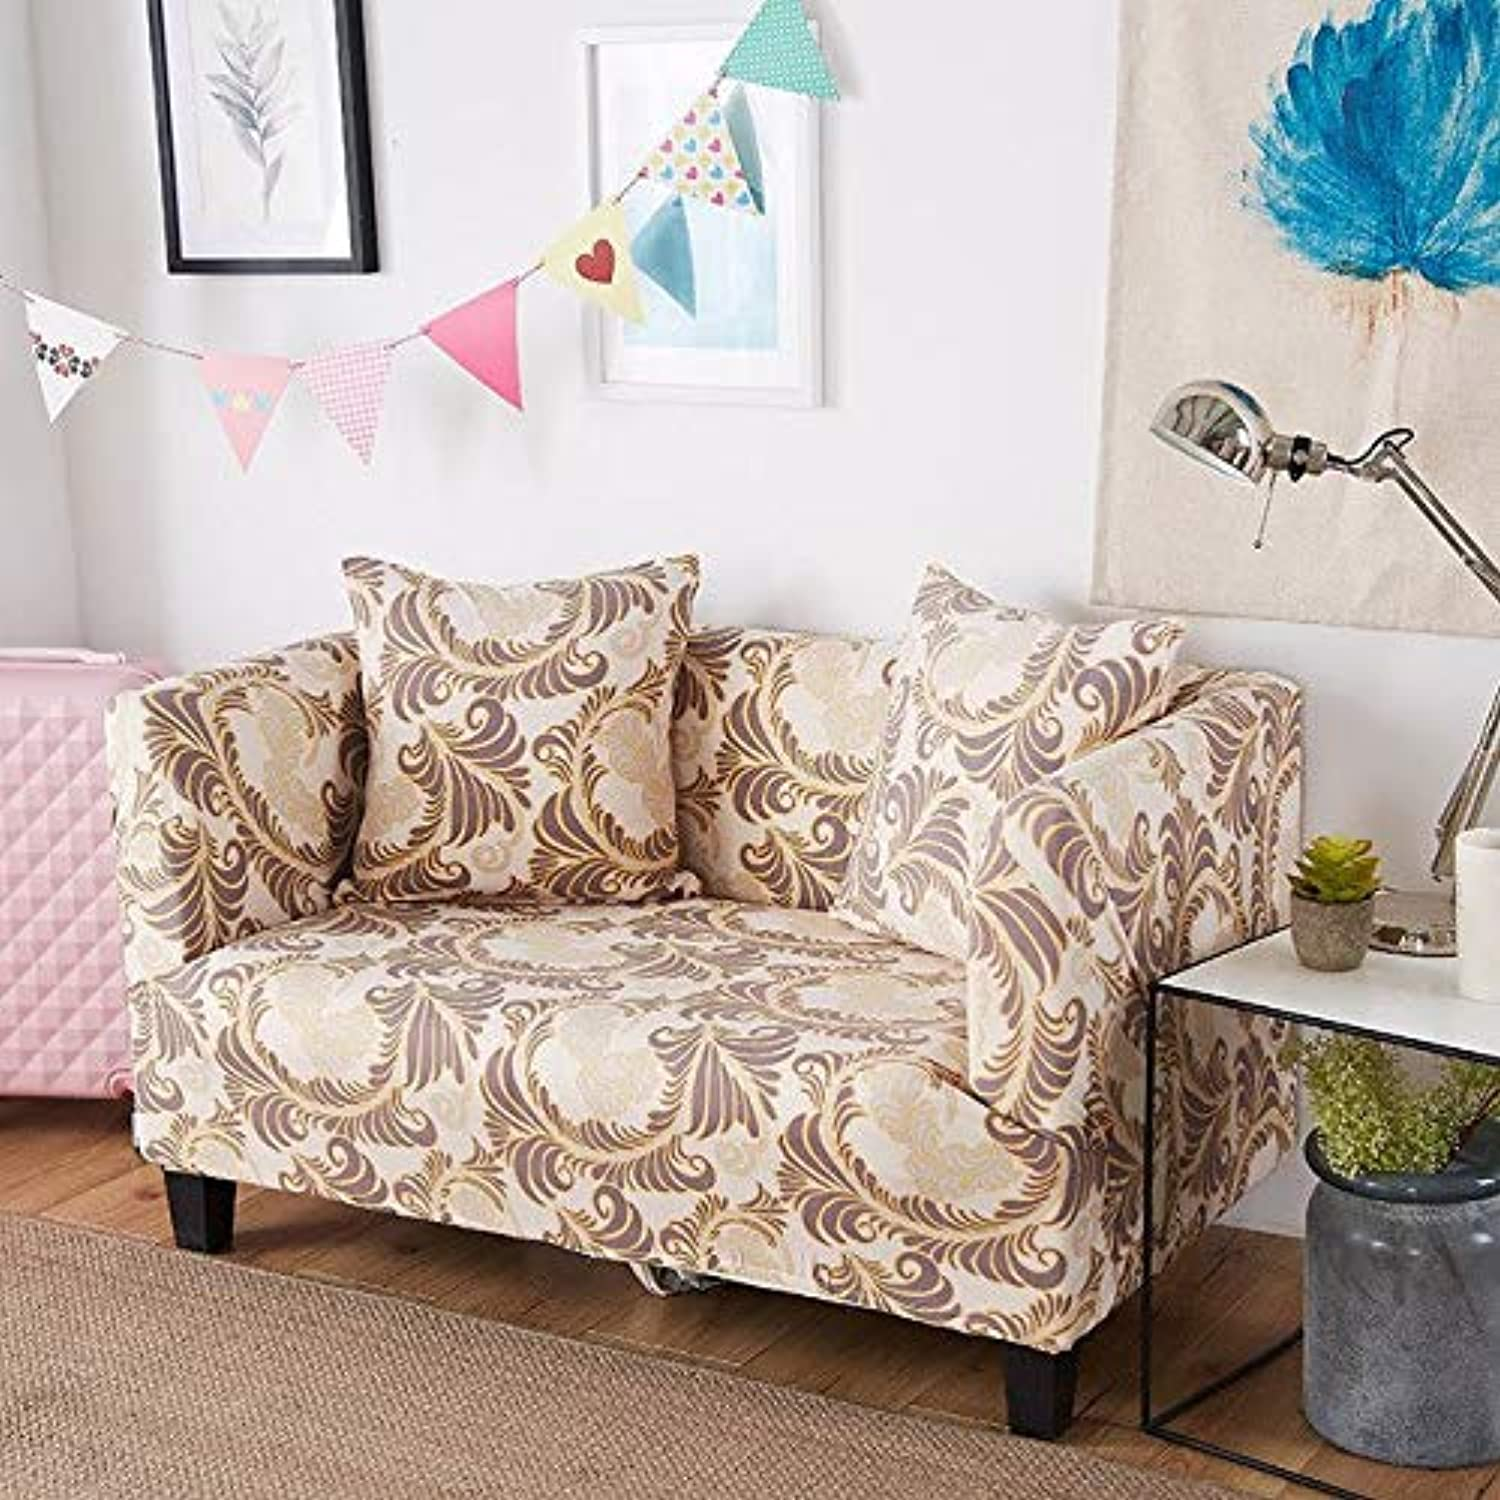 Farmerly 1pcs Flower Leaf Soft Stretch Sofa Cover Home Decor Spandex Furniture Covers Decoration Covering Hotel Slipcover 58001   L, Two seat